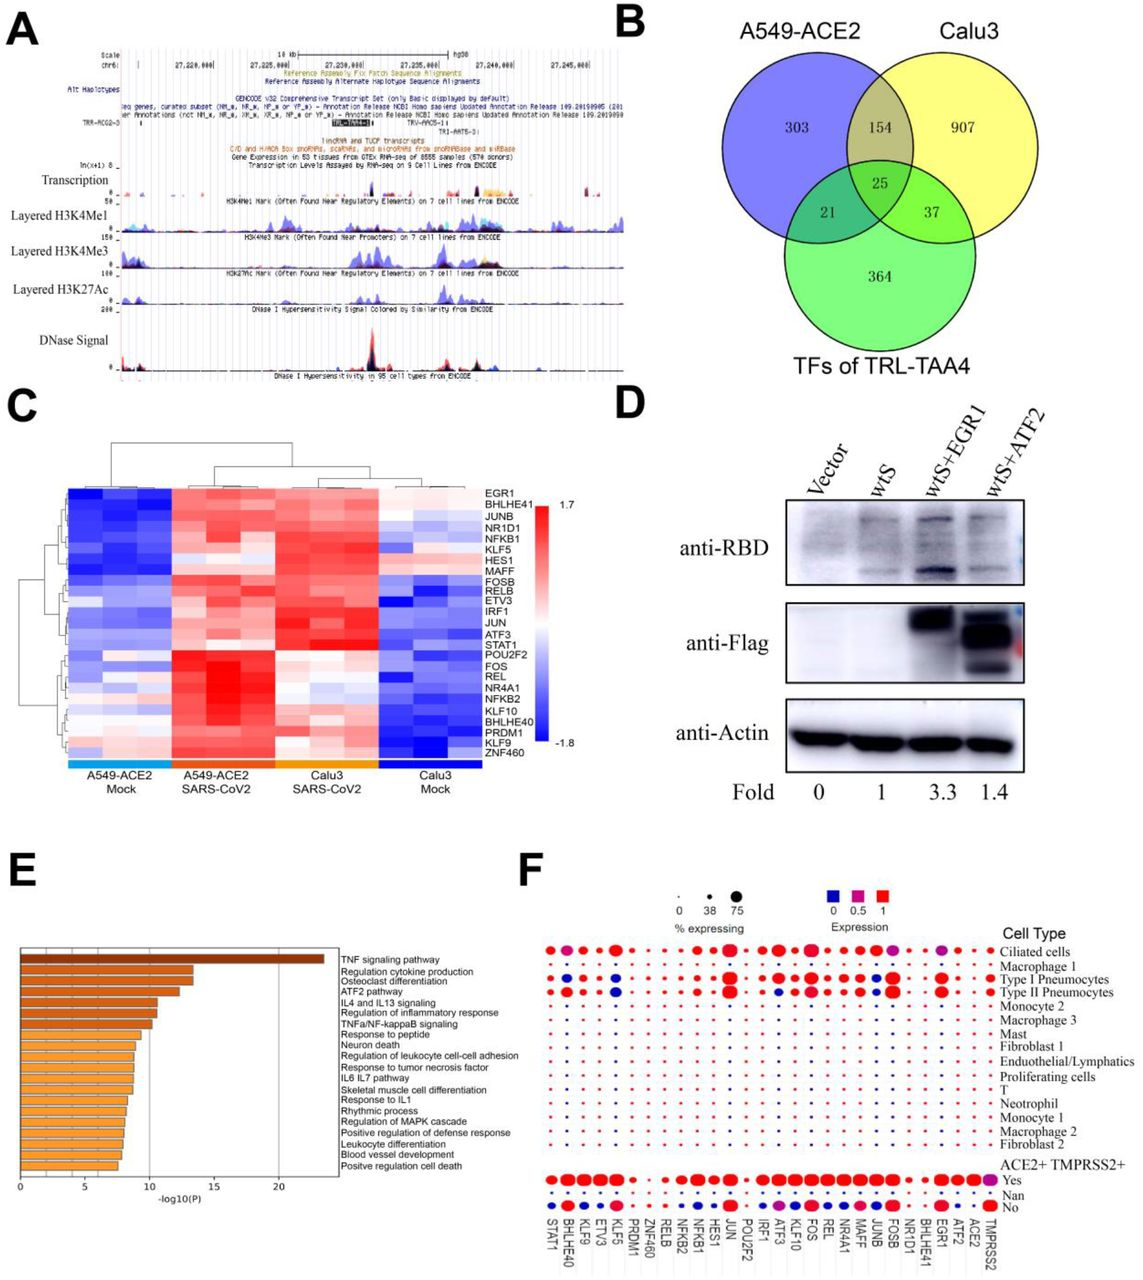 The possible effect of Transcription factors binding Leucine-specific tRNAs in viral protein translation (A) Genomic characteristics including histone modification and transcription factor binding status of tRNA TRL-TAA4-1 which matched with rare codon Leu-TTA was analysed using the UCSC database. (B) Overlap analysis of potential TRL-TAA regulatory transcription factors (TFs) and genes that increased in SARS-CoV-2 infection in A549-ACE2 and Calu3 cells using Venny2.1. (C) Heat map demonstrating the expression of 25 TFs in SARS-CoV-2-infected cell lines created using R studio. (D) Western Blot assay to assess the protein level of S after co-transfection with EGR1 or ATF2 in HEK-293 cells. (E). Differentially expressed genes after SARS-CoV-2 infection (GSE147507) were analyzed with R Studio. Pathway enrichment of highly expressed genes was mapped using Metascape (F) Distribution of genes including ACE2, TMPRSS2, ATF2 and identified TFs in human lung cells was created using public single cell sequence data( 18 ).